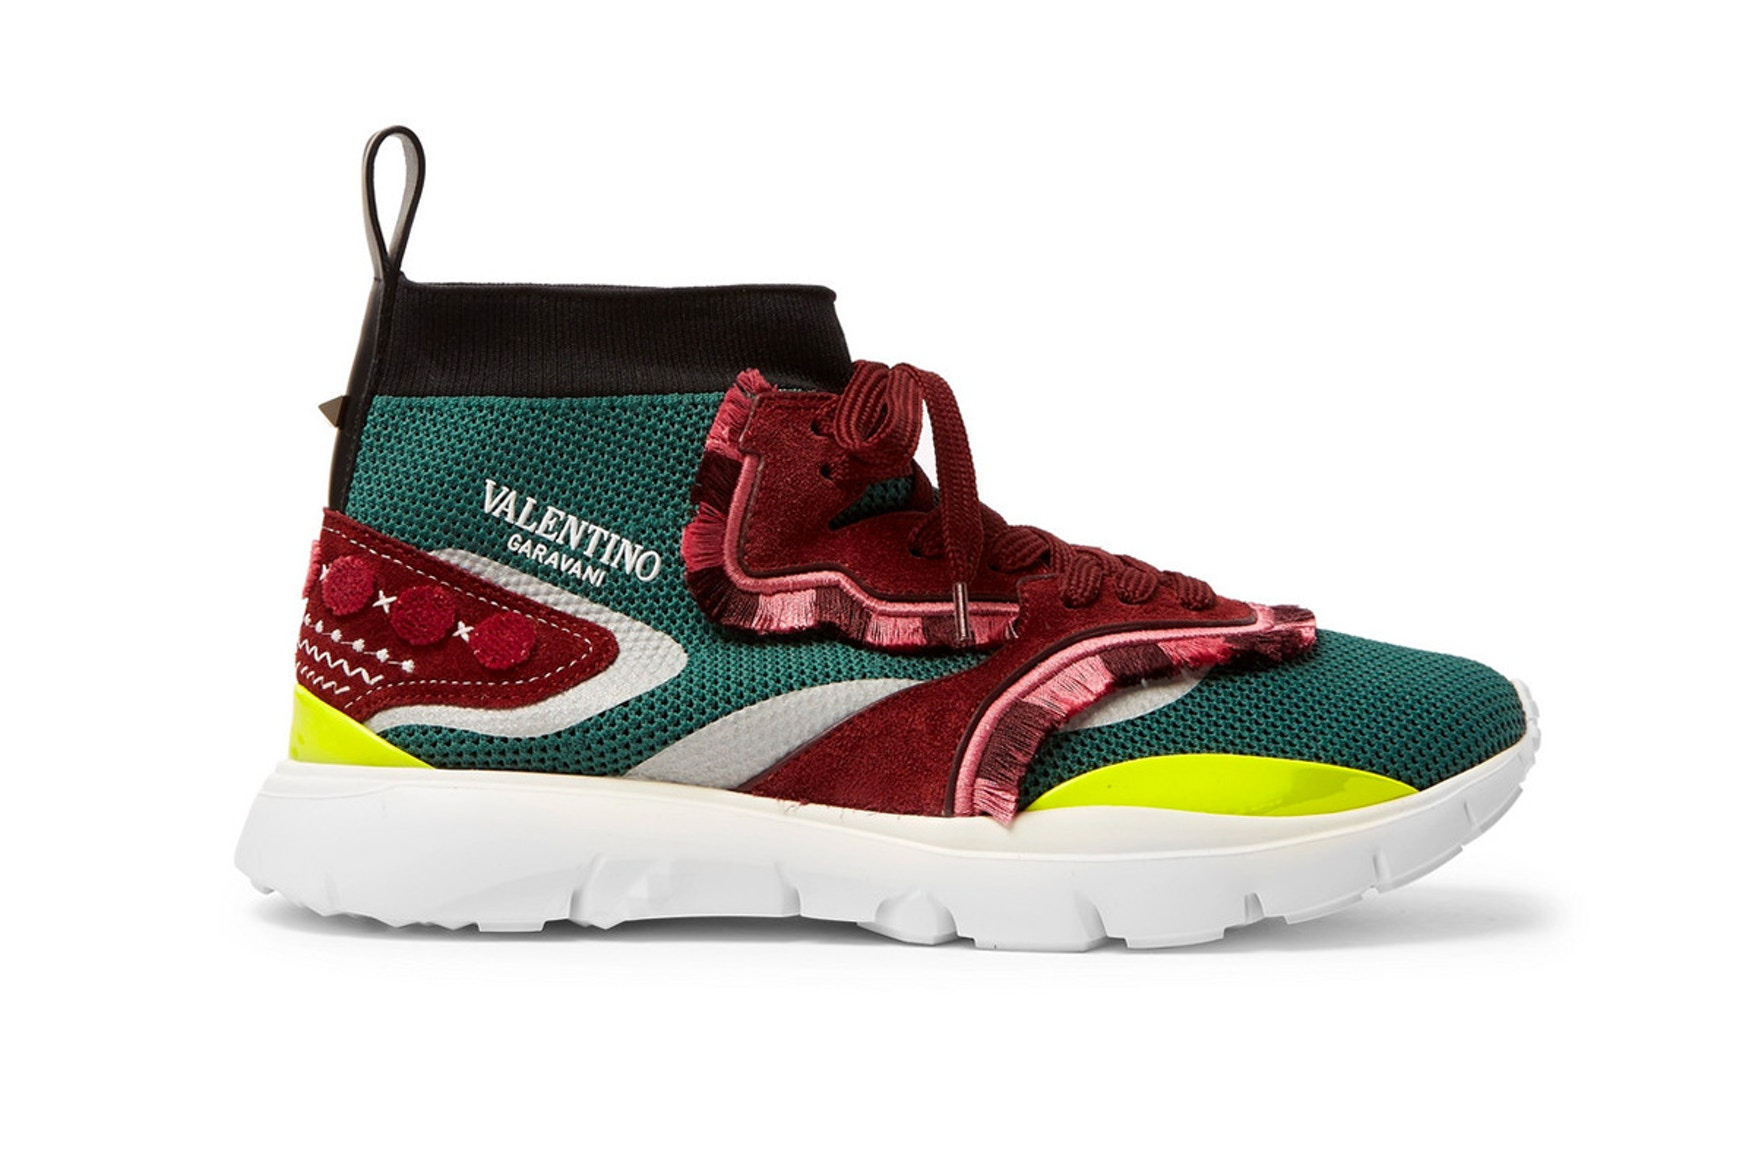 valentino-heroes-tribe-sneakers-release-1